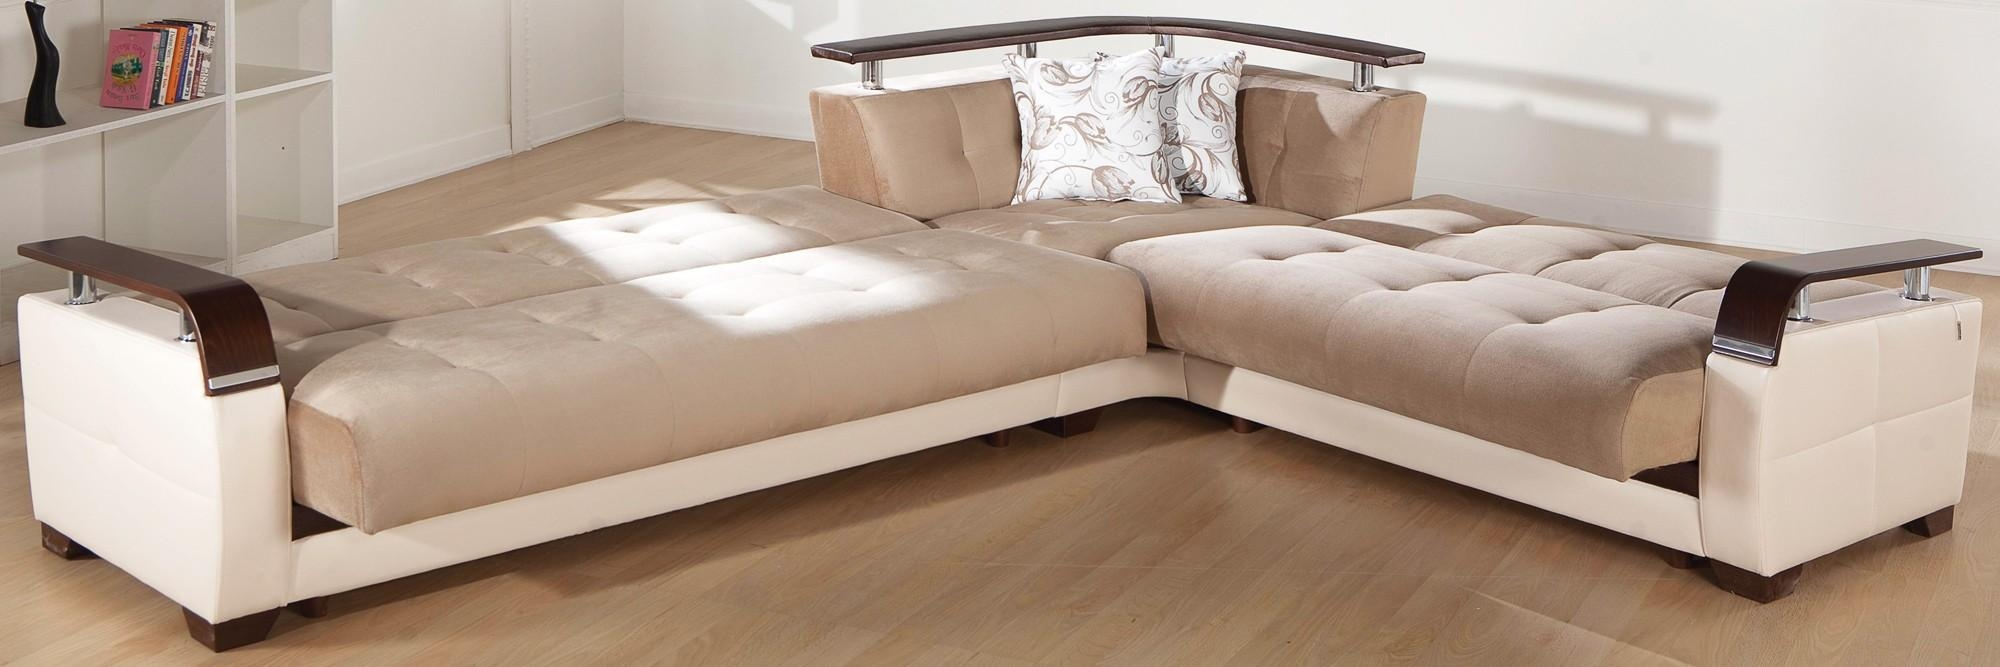 Living Room : Leather Sectional Sleeper Sofa With Reclining Queen In Sectional Sofas With Sleeper And Chaise (Image 12 of 21)